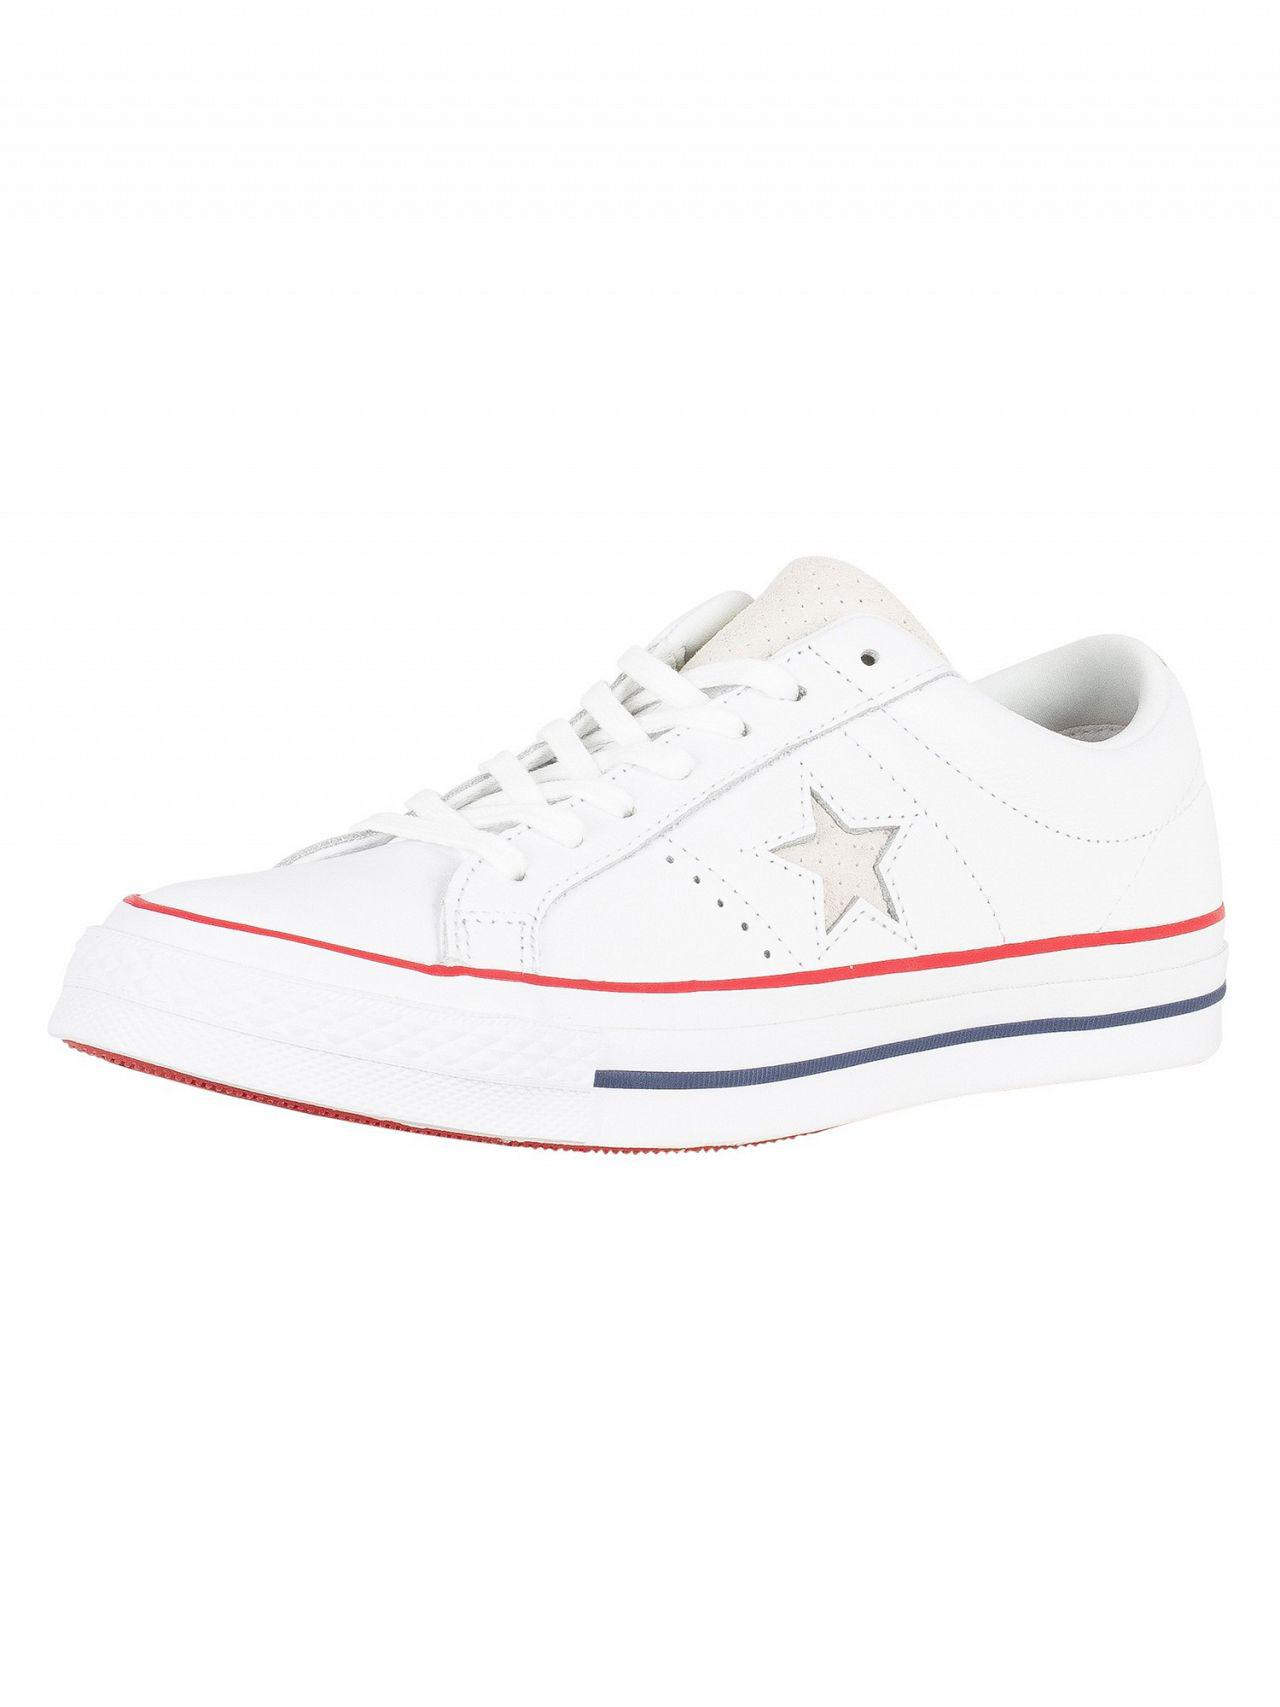 634e5ca9b1428d Converse White gym Red white One Star Ox Leather Trainers in White ...